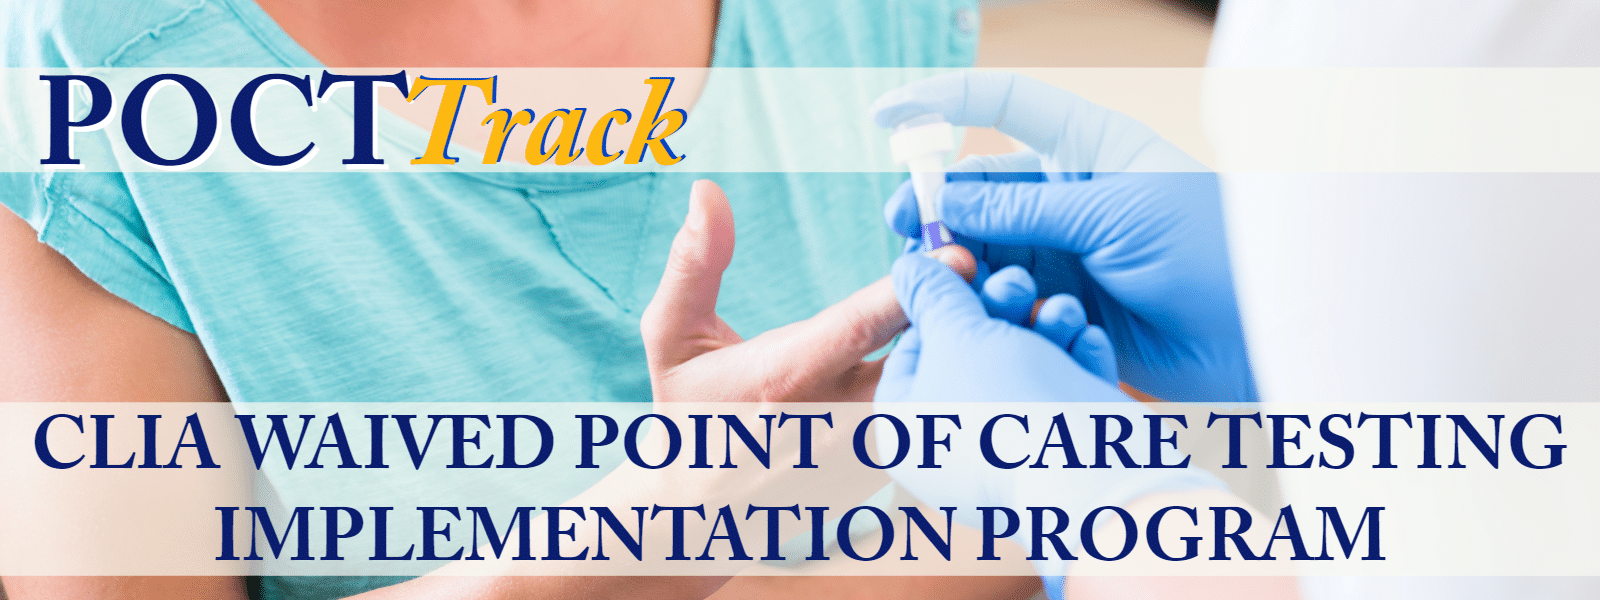 Point of Care Implementation Program (POCTTrack)